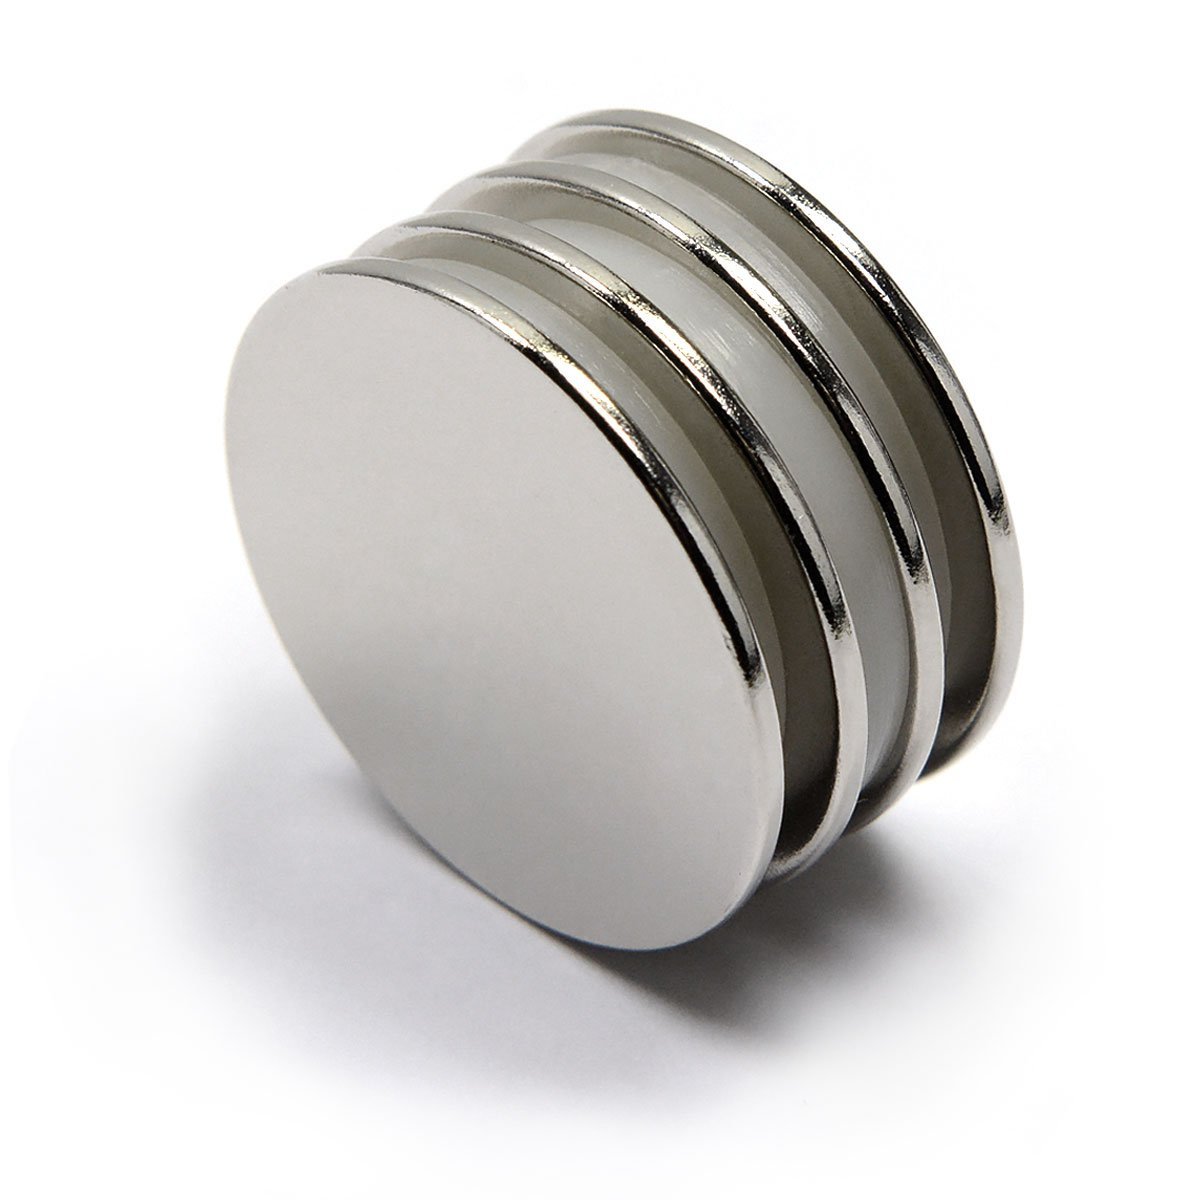 Super Baltimore Mall Strong Neodymium Disc Max 67% OFF Magnets Dia 1 Craftin 1.26 16